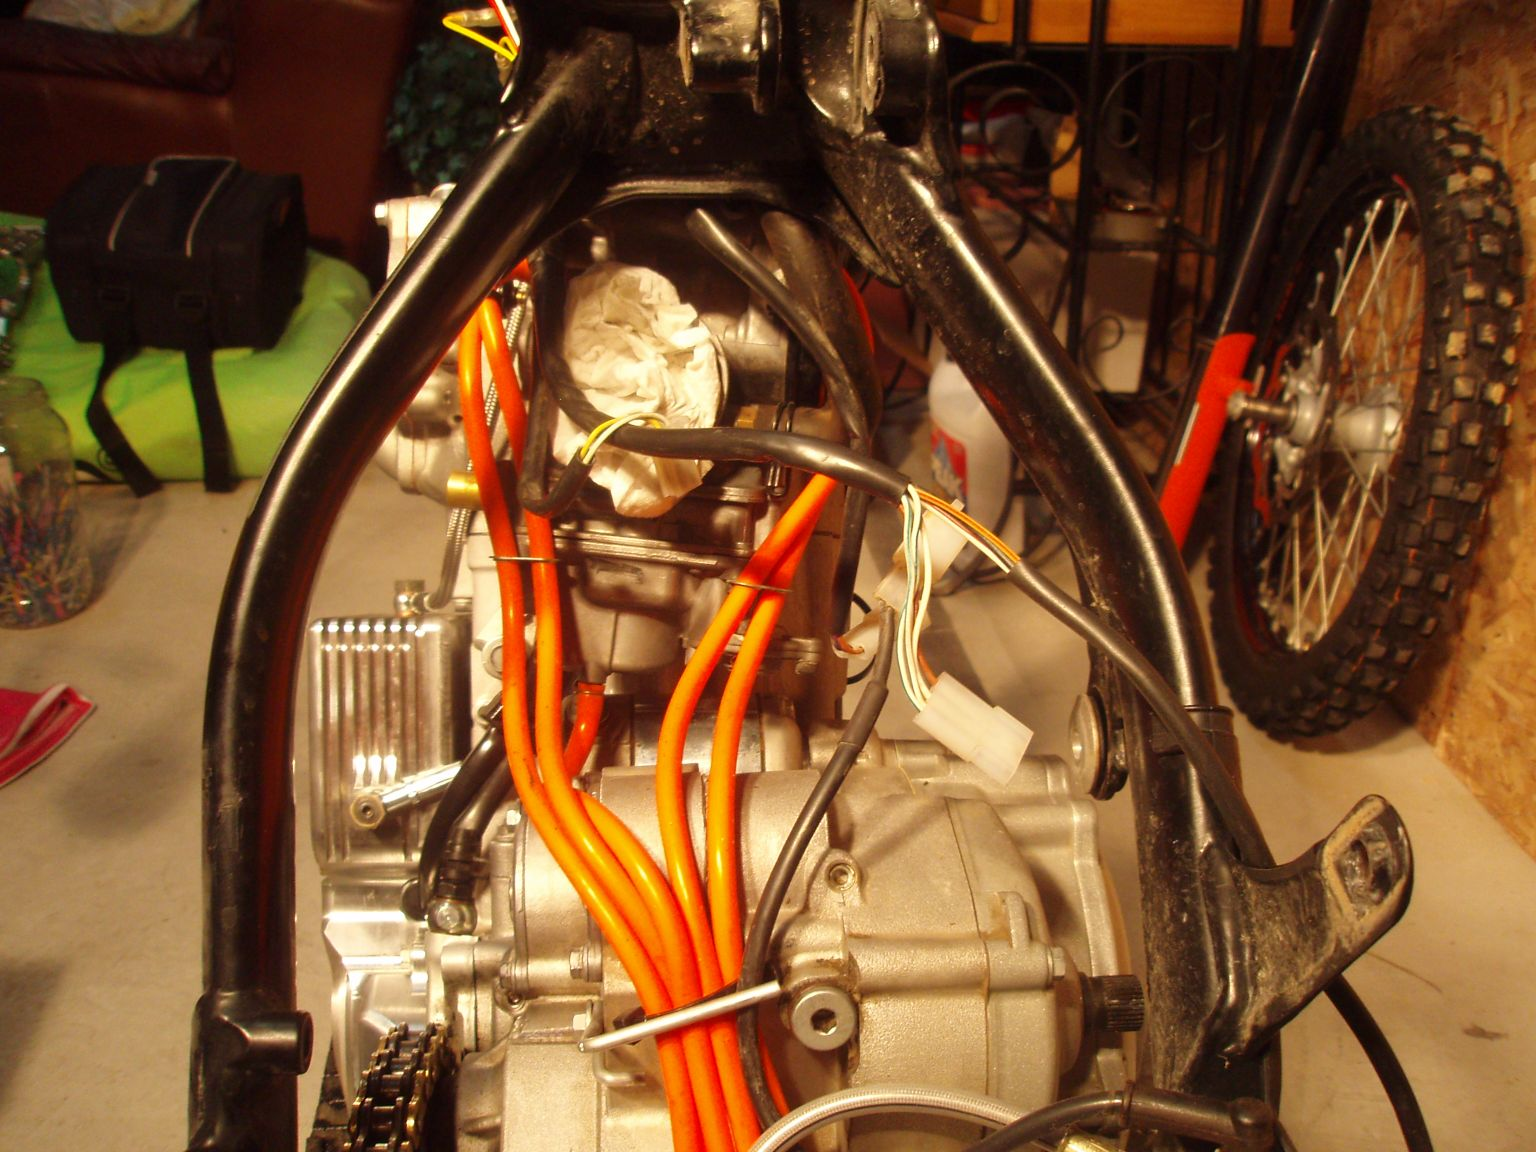 Ktm 525 Adventure Project 520 Sx Wiring Diagram I Had A Stabilizer From Previous That Was Not Using Would Fit This Bike So While The Torn Down To Point Installed